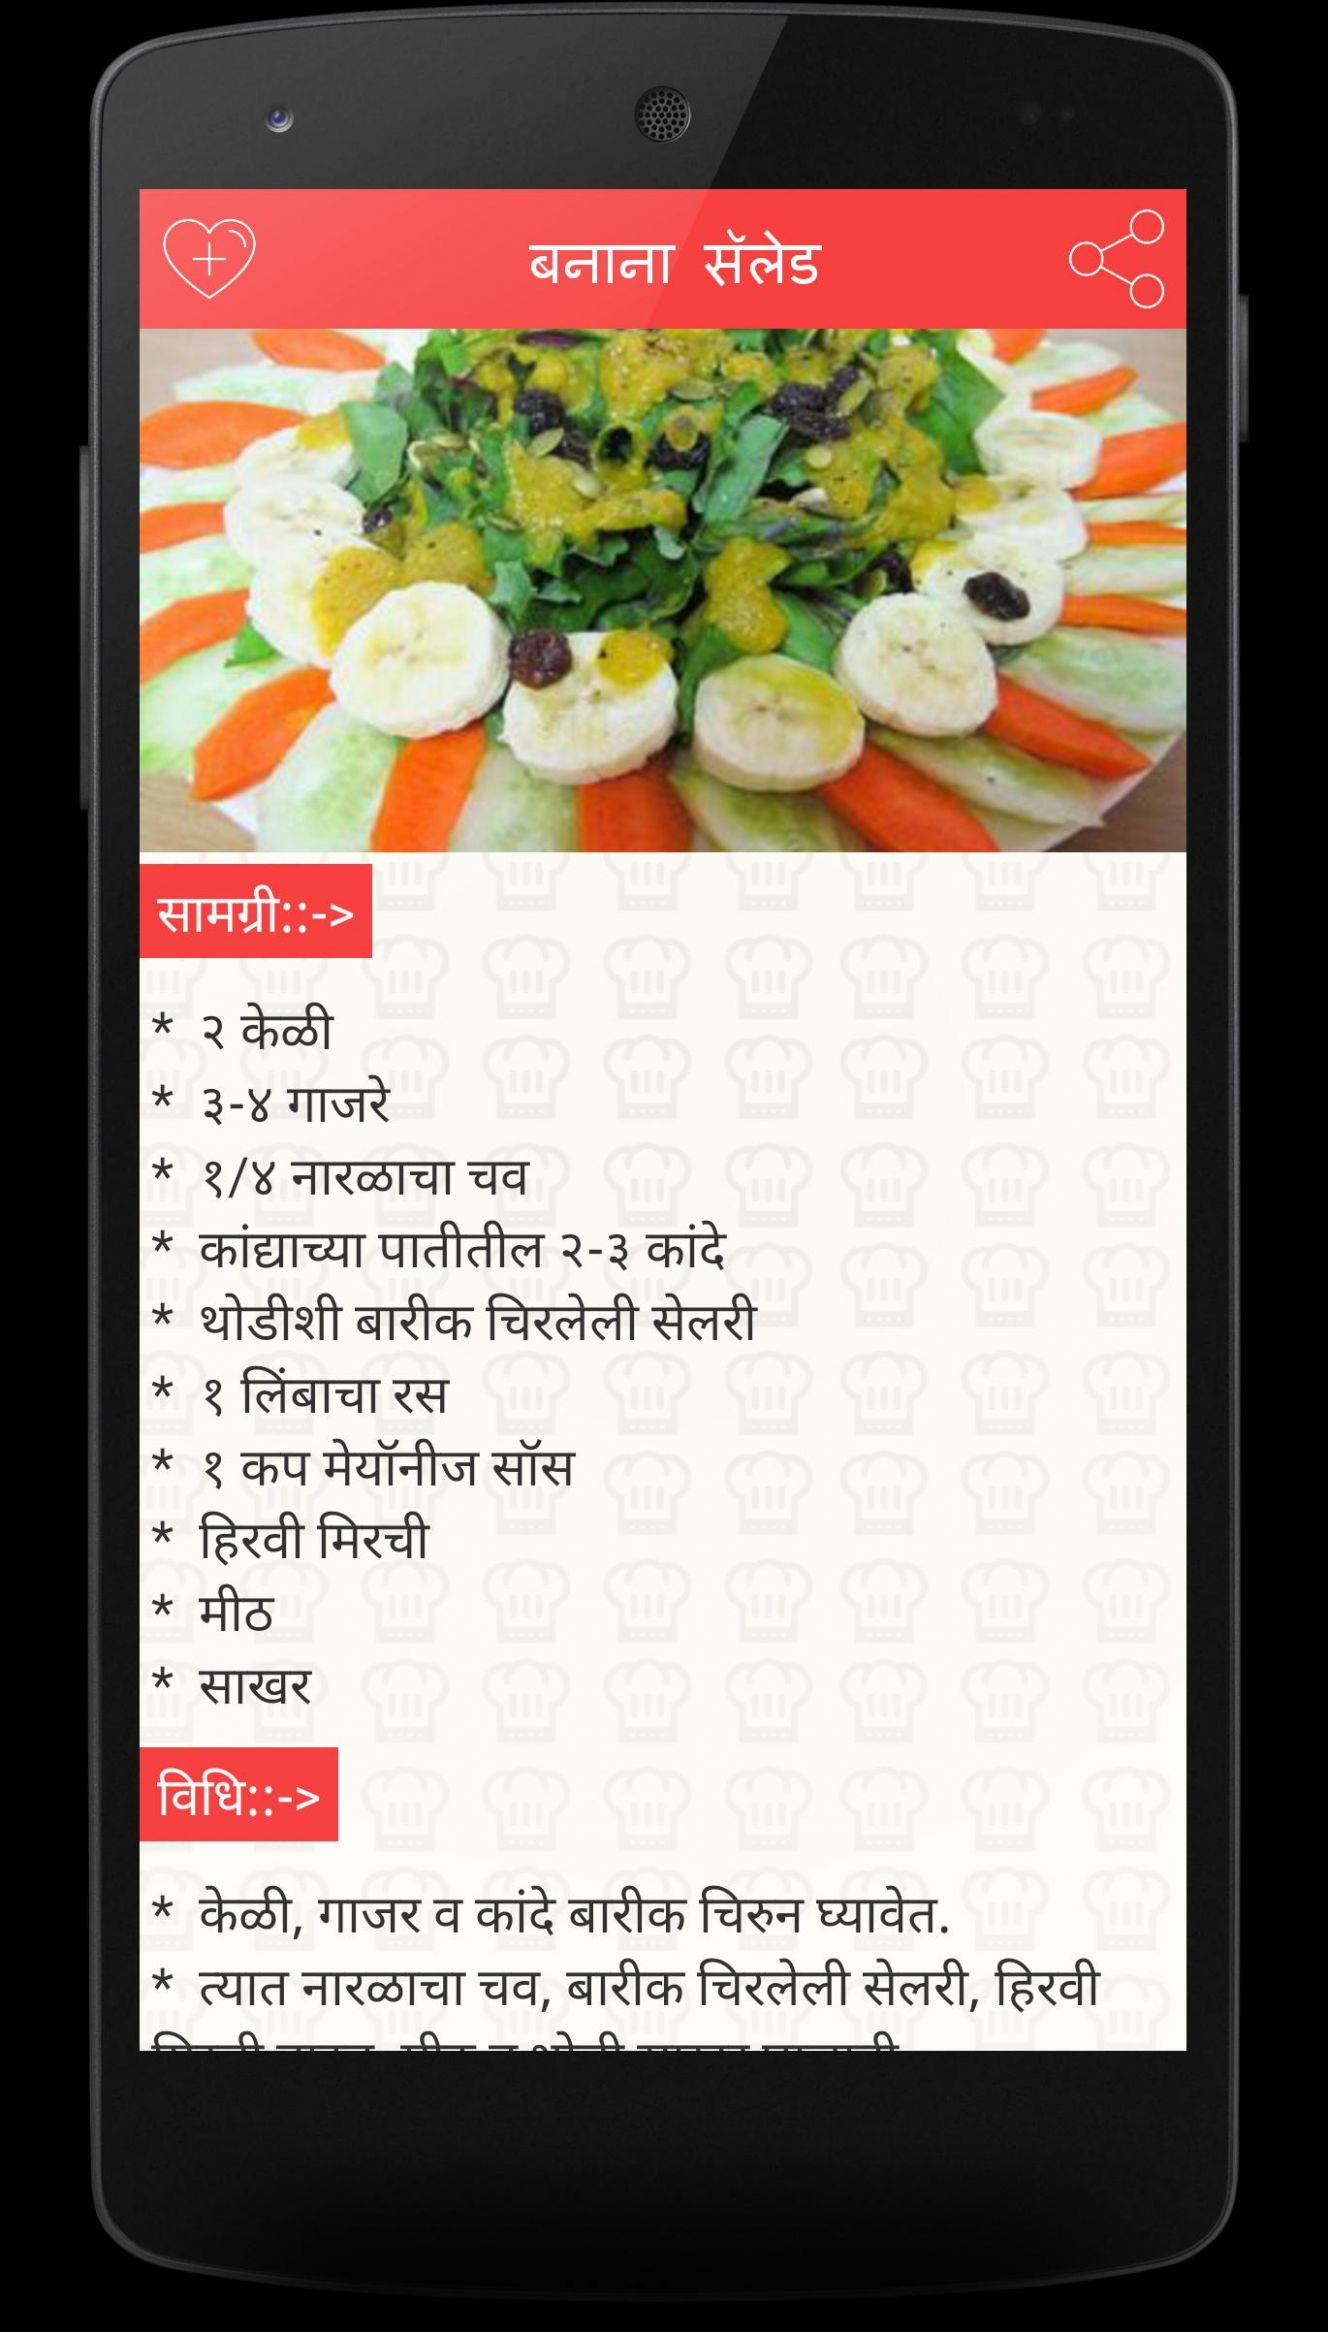 Salad Recipes in Marathi for Android - APK Download